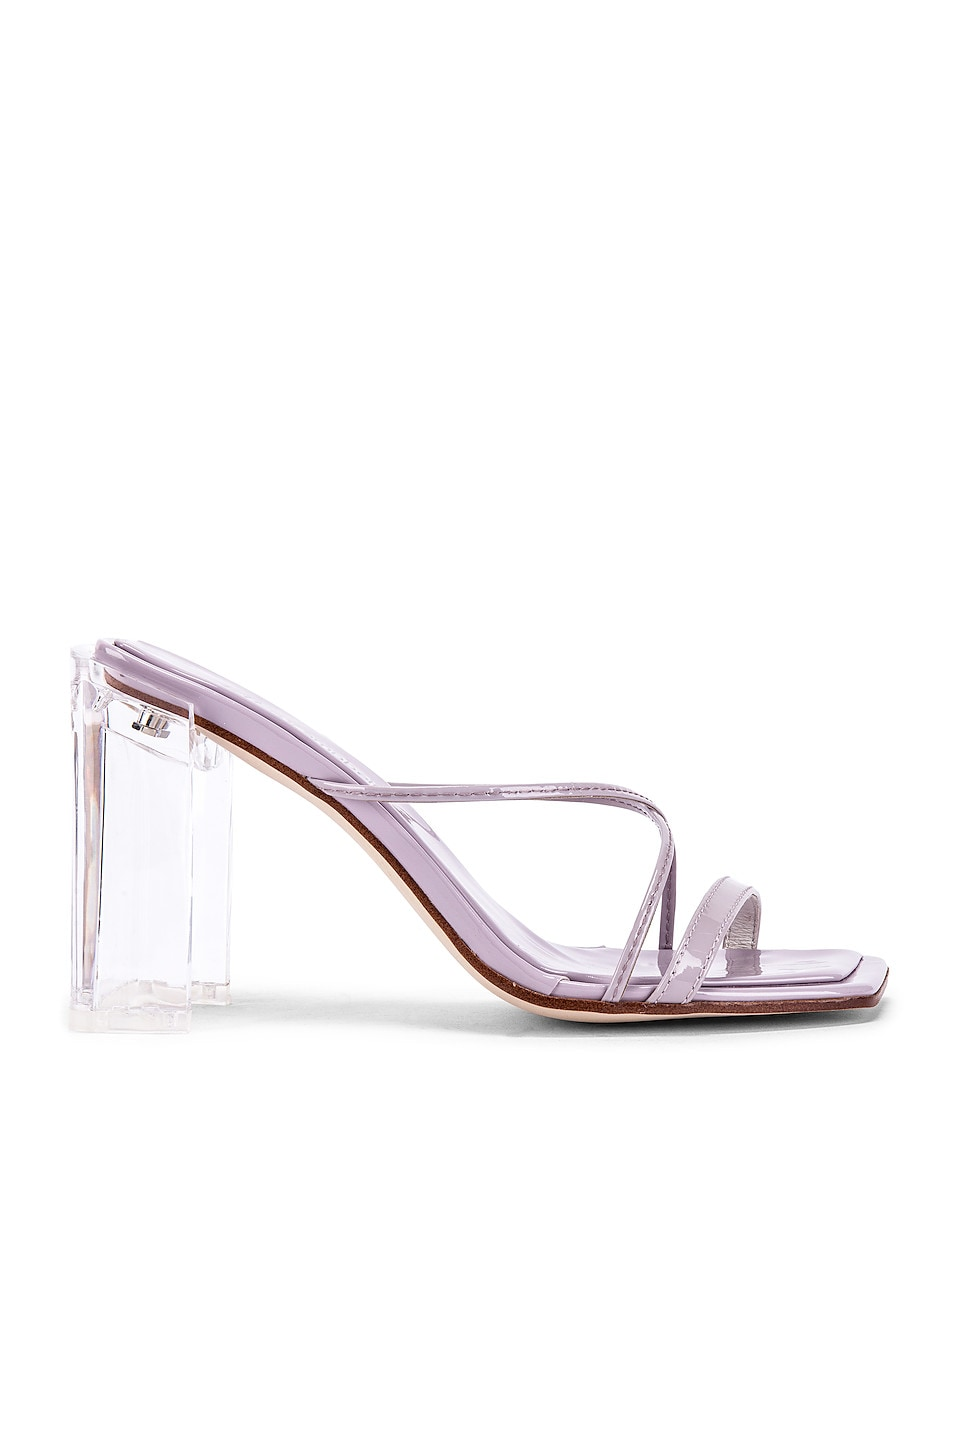 Jeffrey Campbell Mural Hi Heel in Lilac Patent & Clear